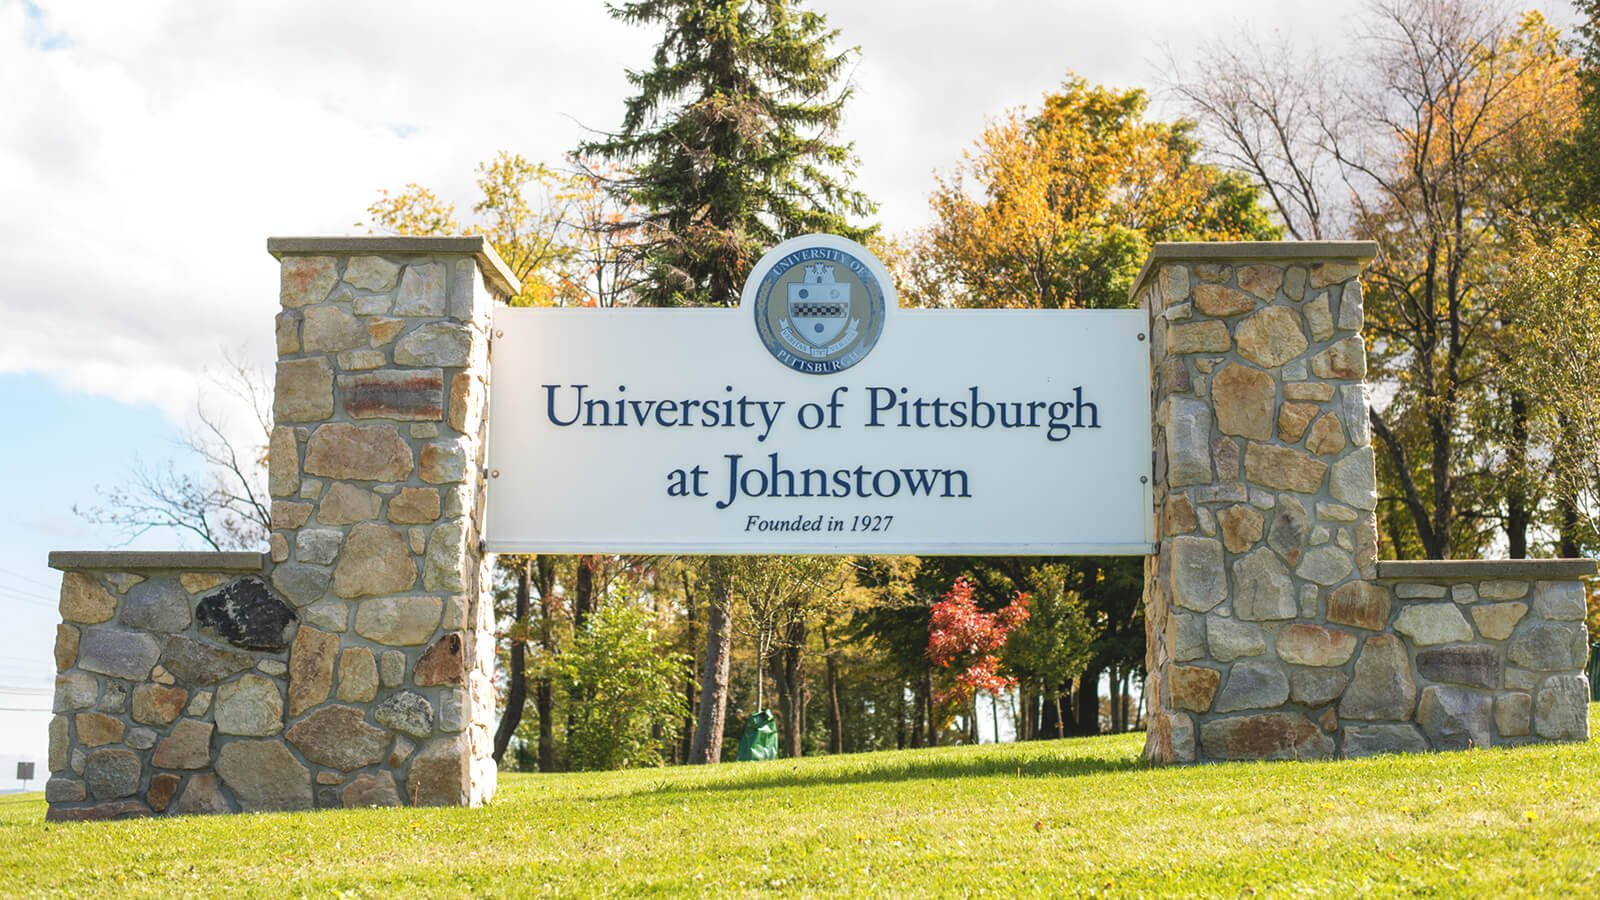 University of Pittsburgh-Johnstown